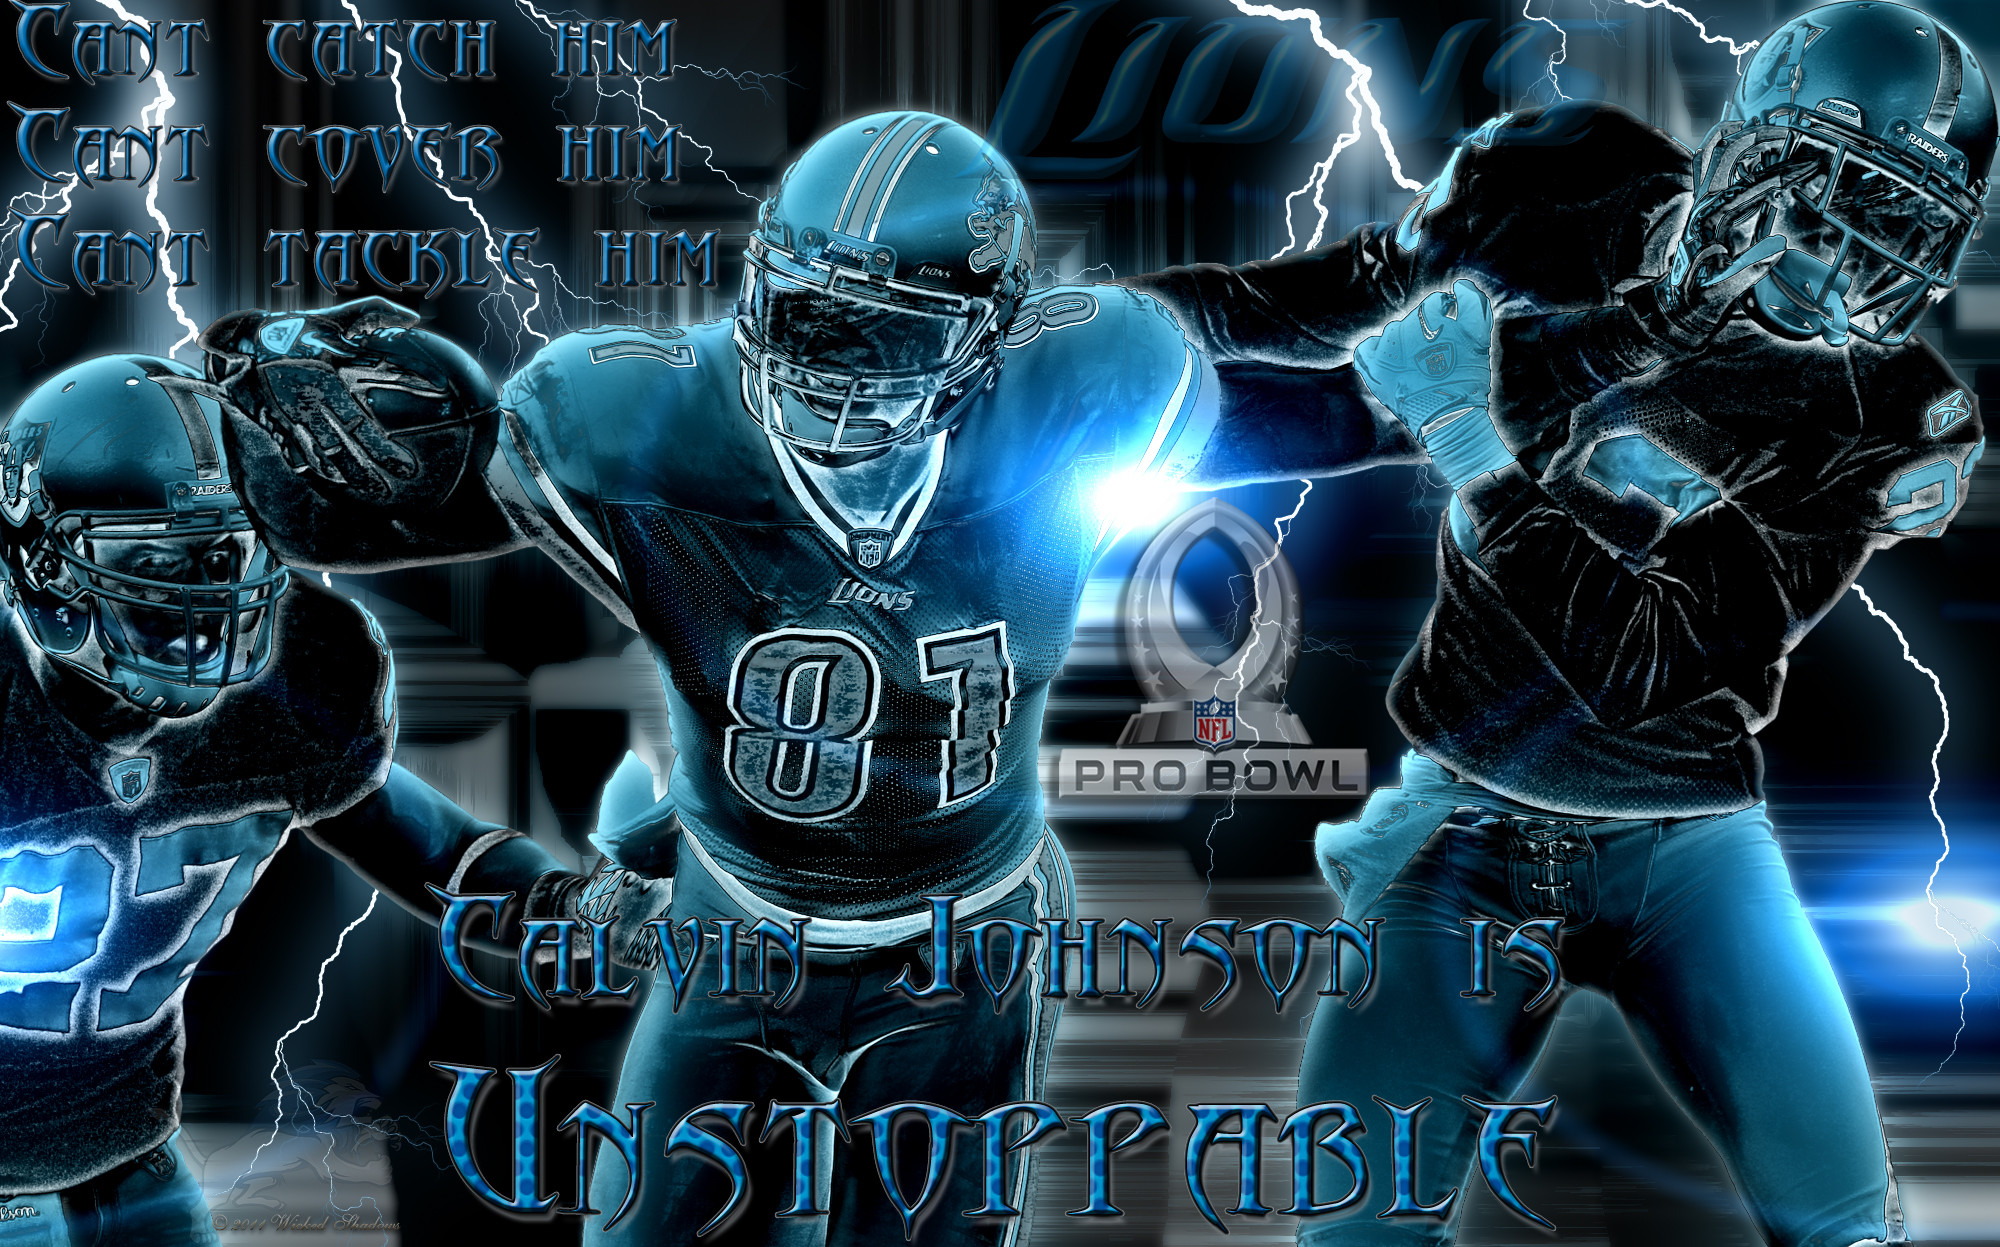 Download free detroit lions wallpapers for your mobile phone by